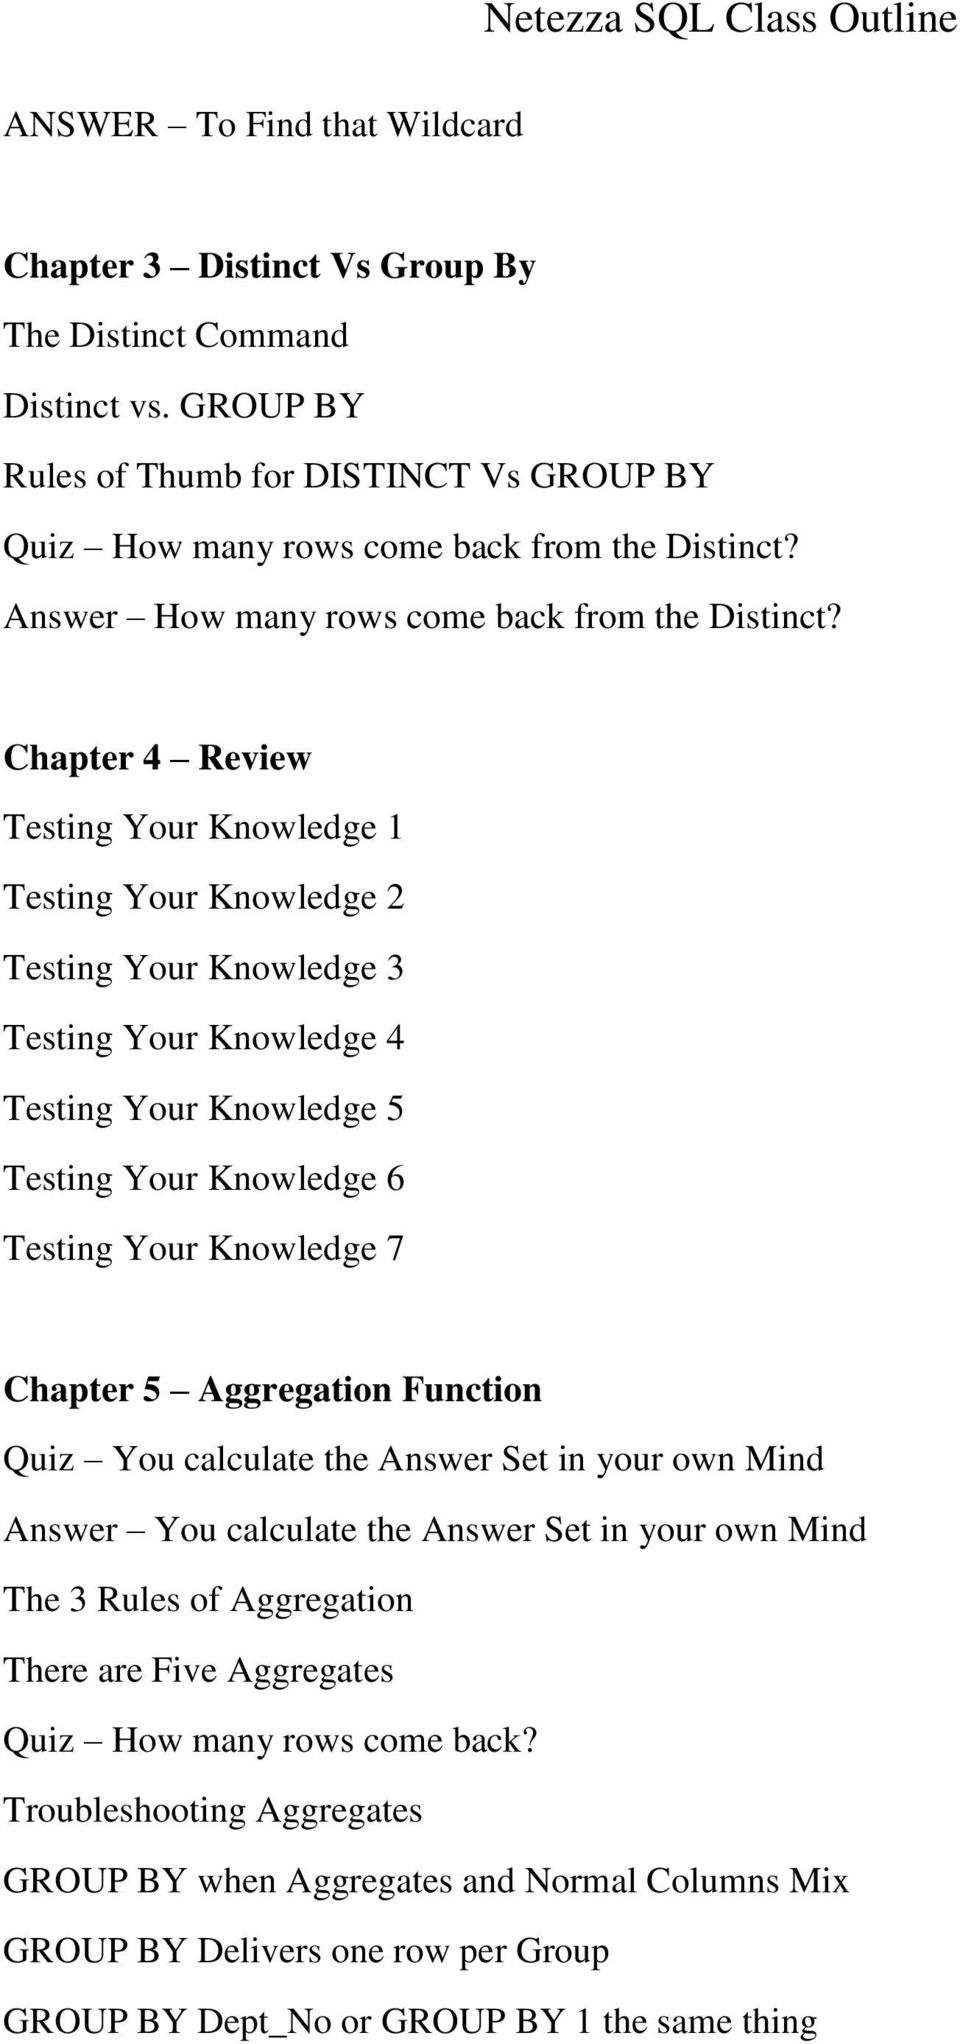 Chapter 4 Review Testing Your Knowledge 1 Testing Your Knowledge 2 Testing Your Knowledge 3 Testing Your Knowledge 4 Testing Your Knowledge 5 Testing Your Knowledge 6 Testing Your Knowledge 7 Chapter